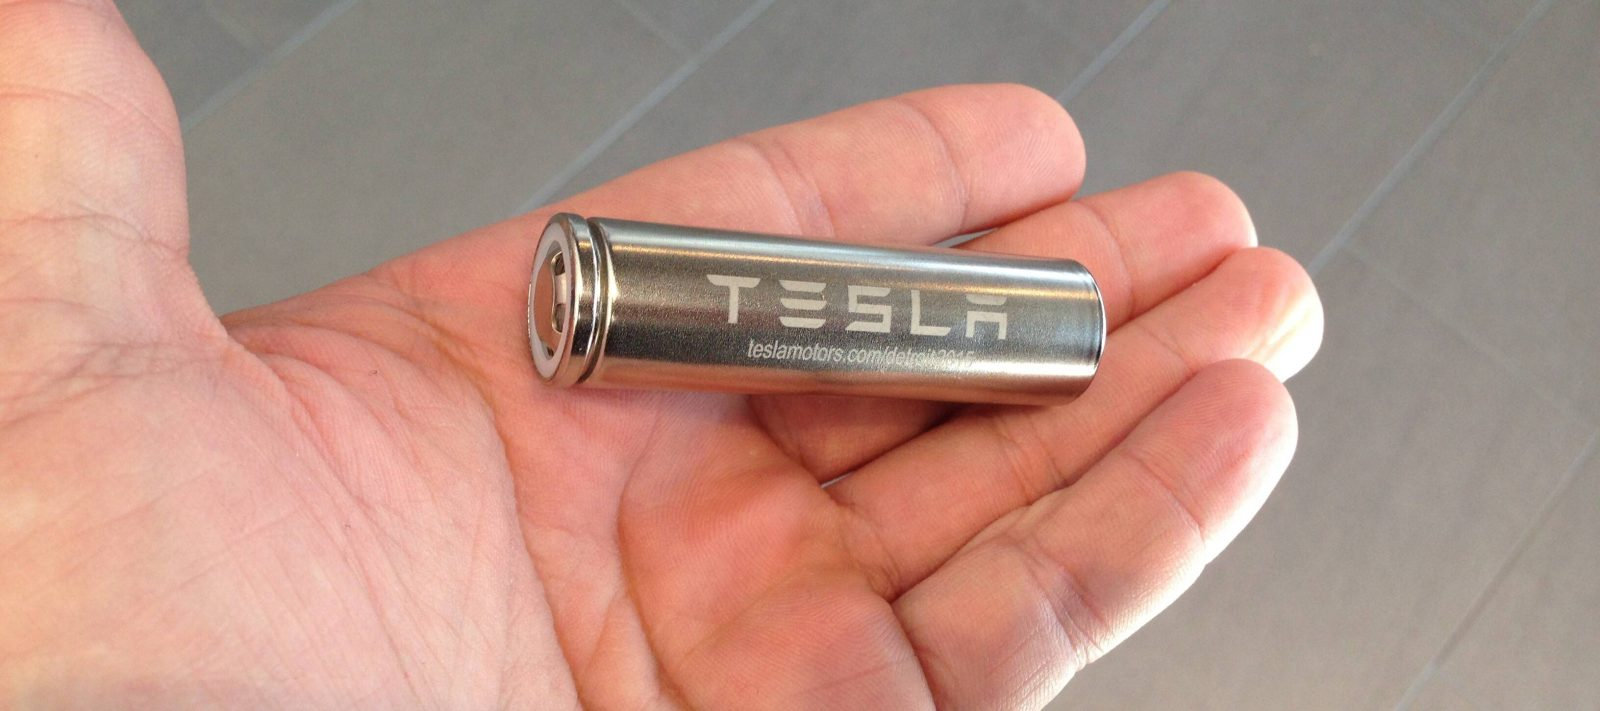 Tesla Model 3 is responsible for 16% of the world's new electric car battery capacity